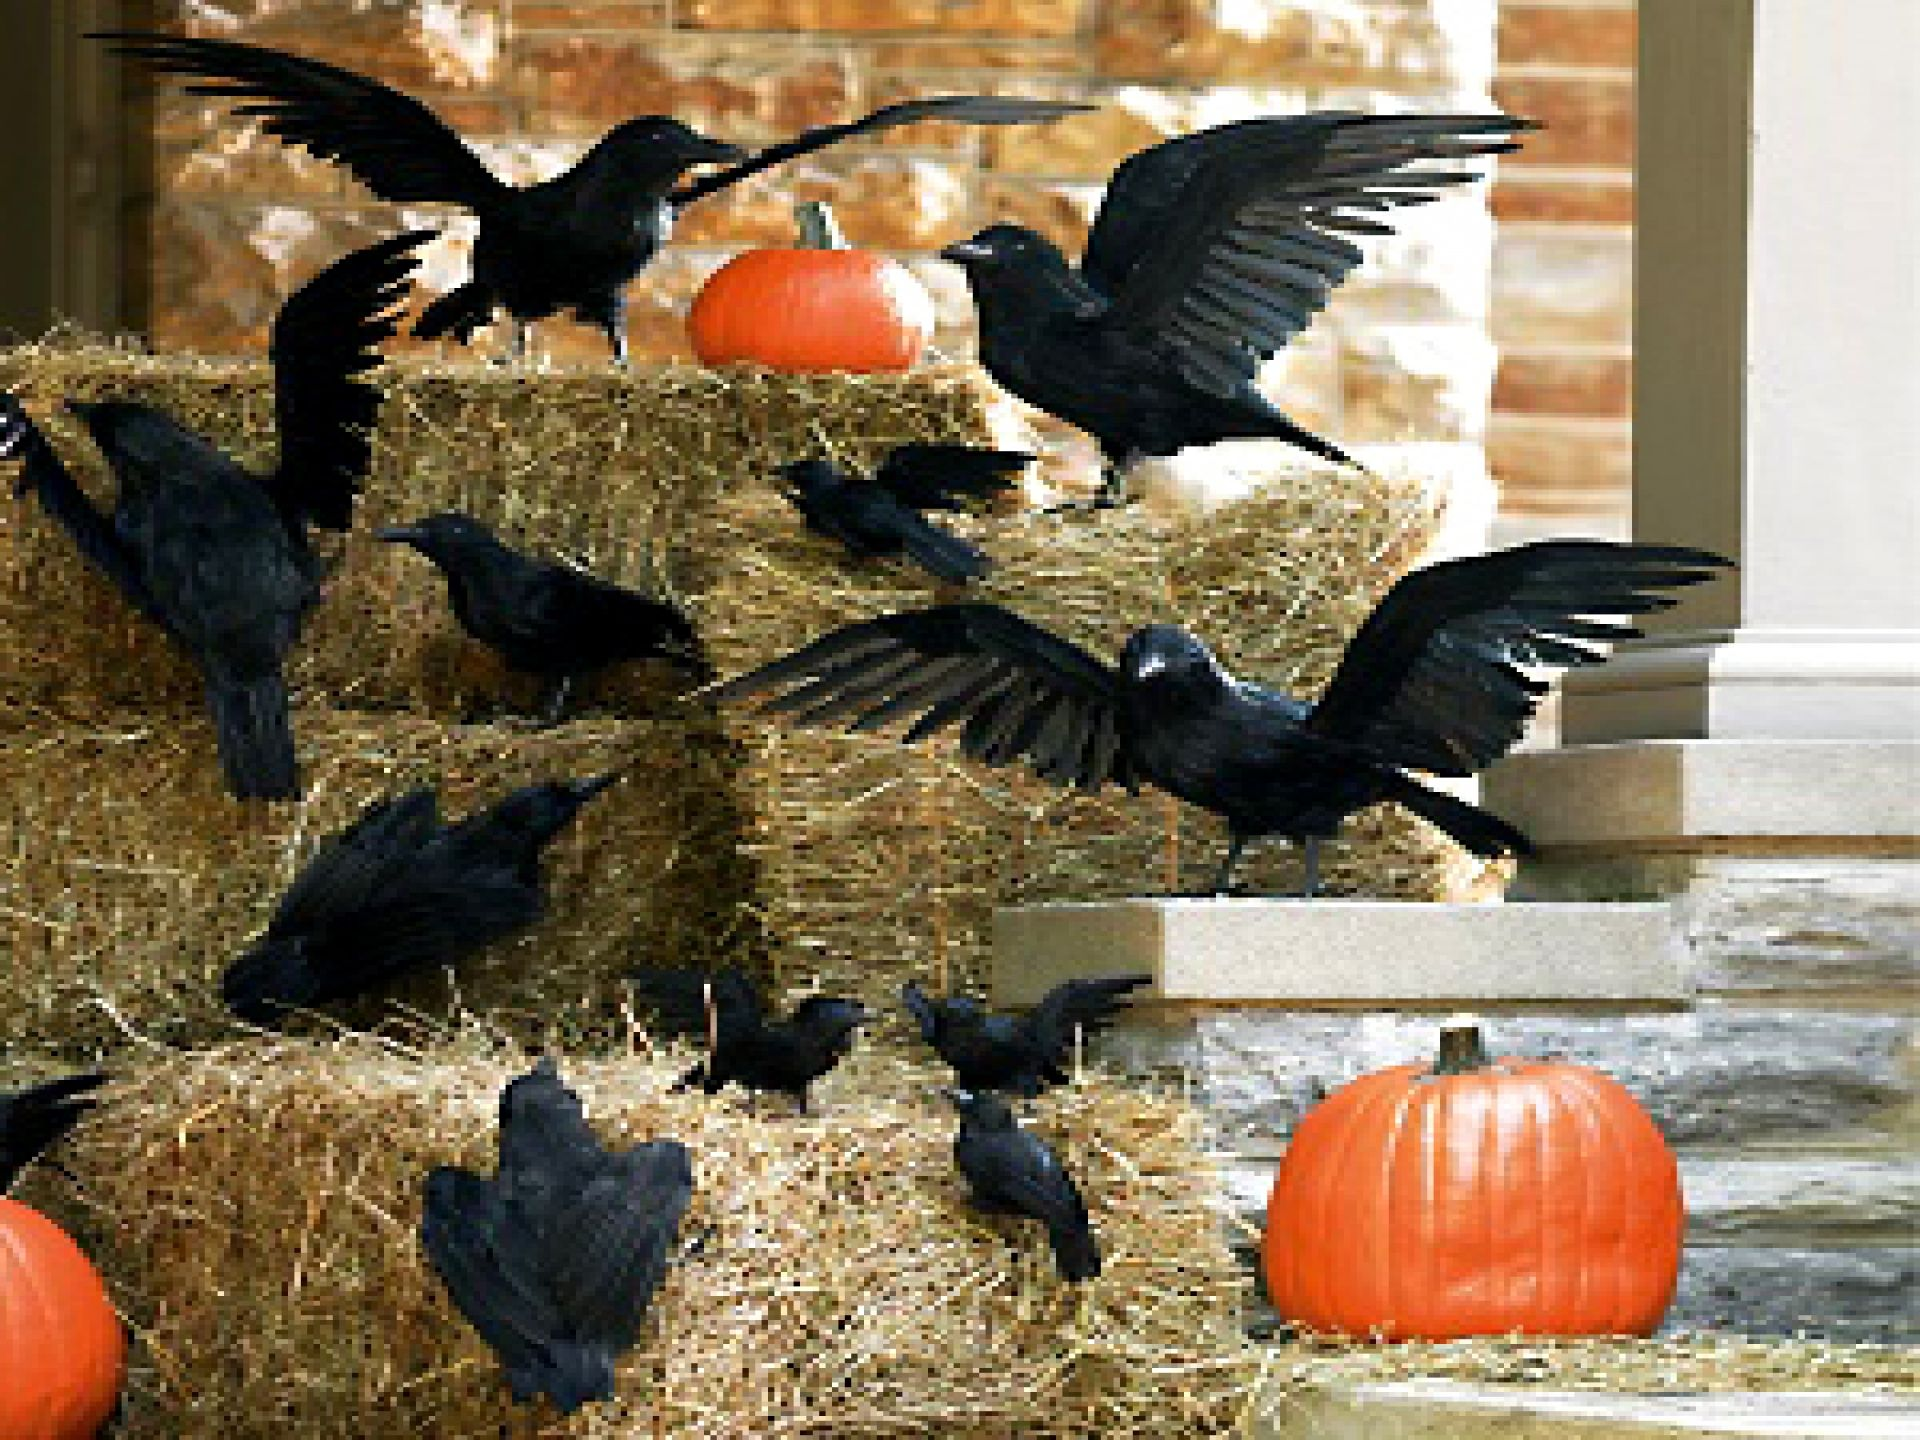 Homemade Outdoor Halloween Decorations Ideas This is a cool bird - Homemade Halloween Decorations Pinterest